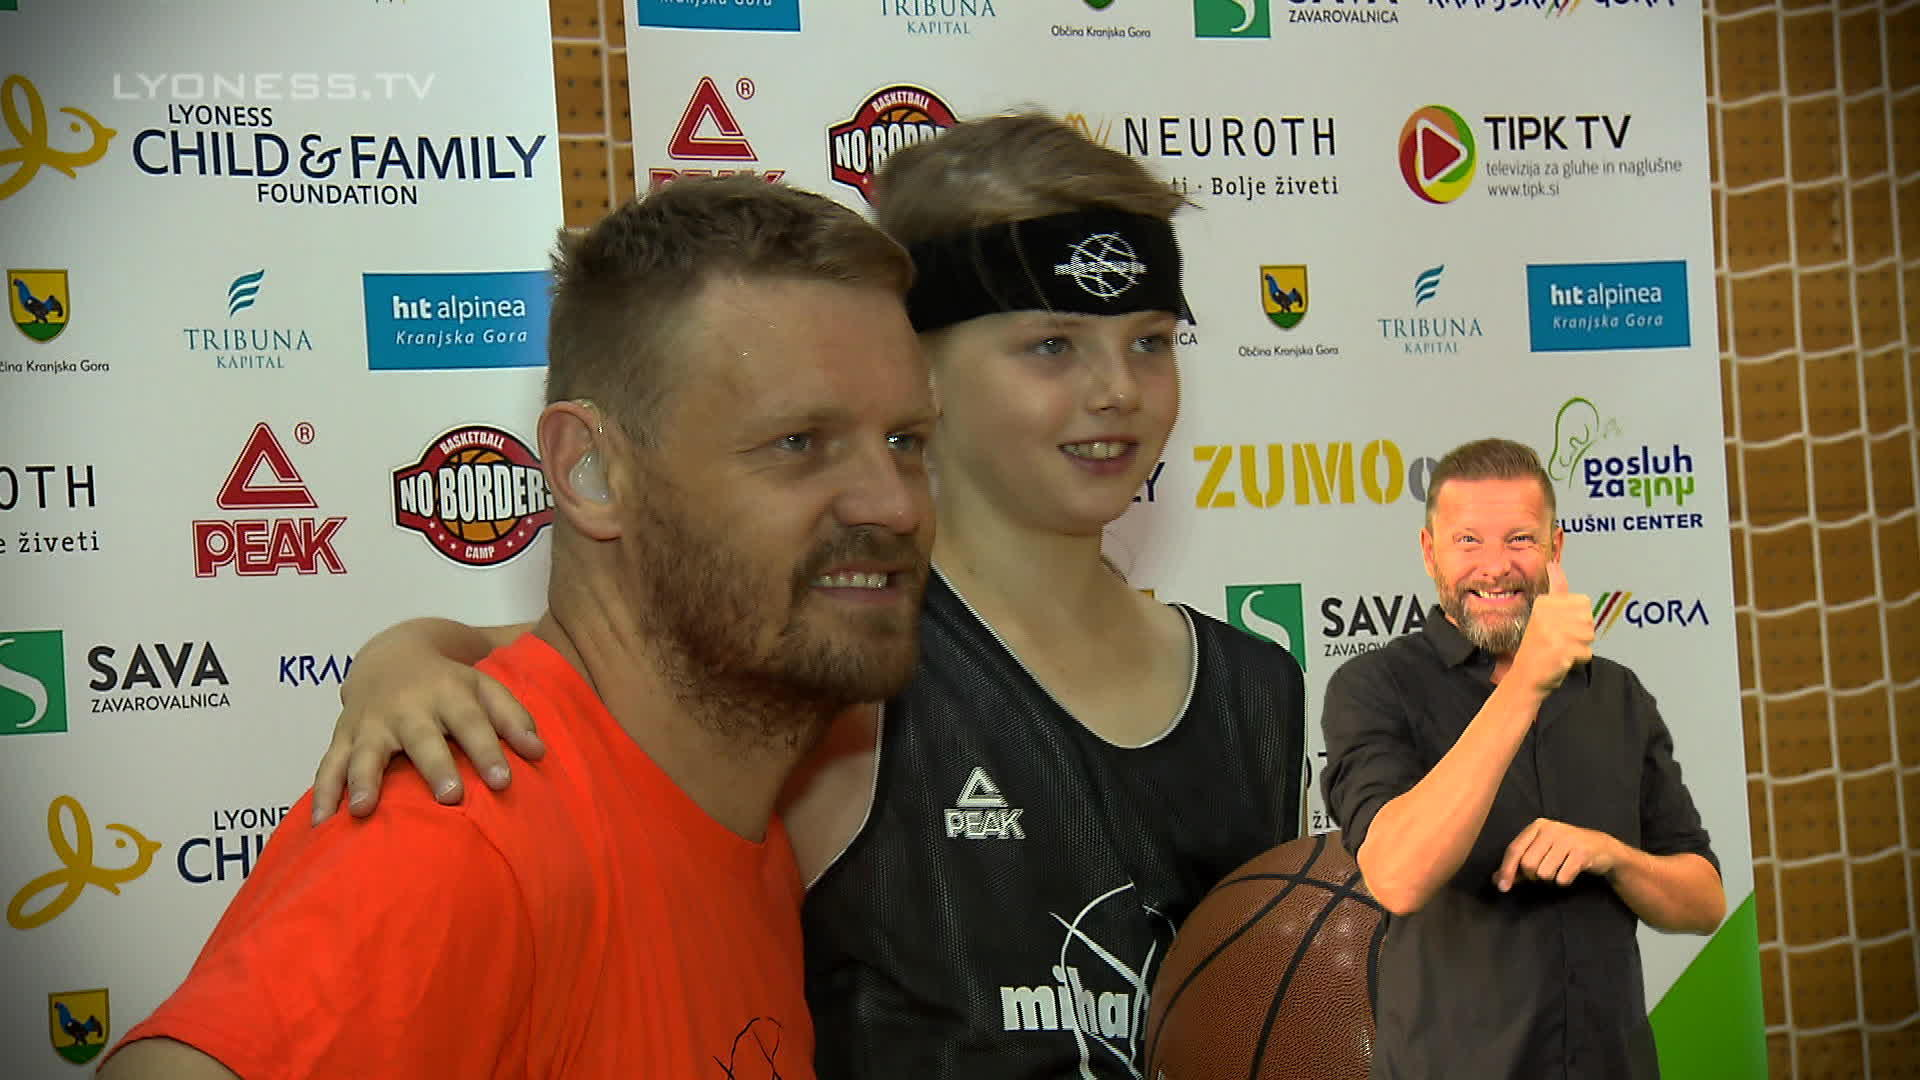 Basketball Training with professional player, Miha Zupan – Sign Language